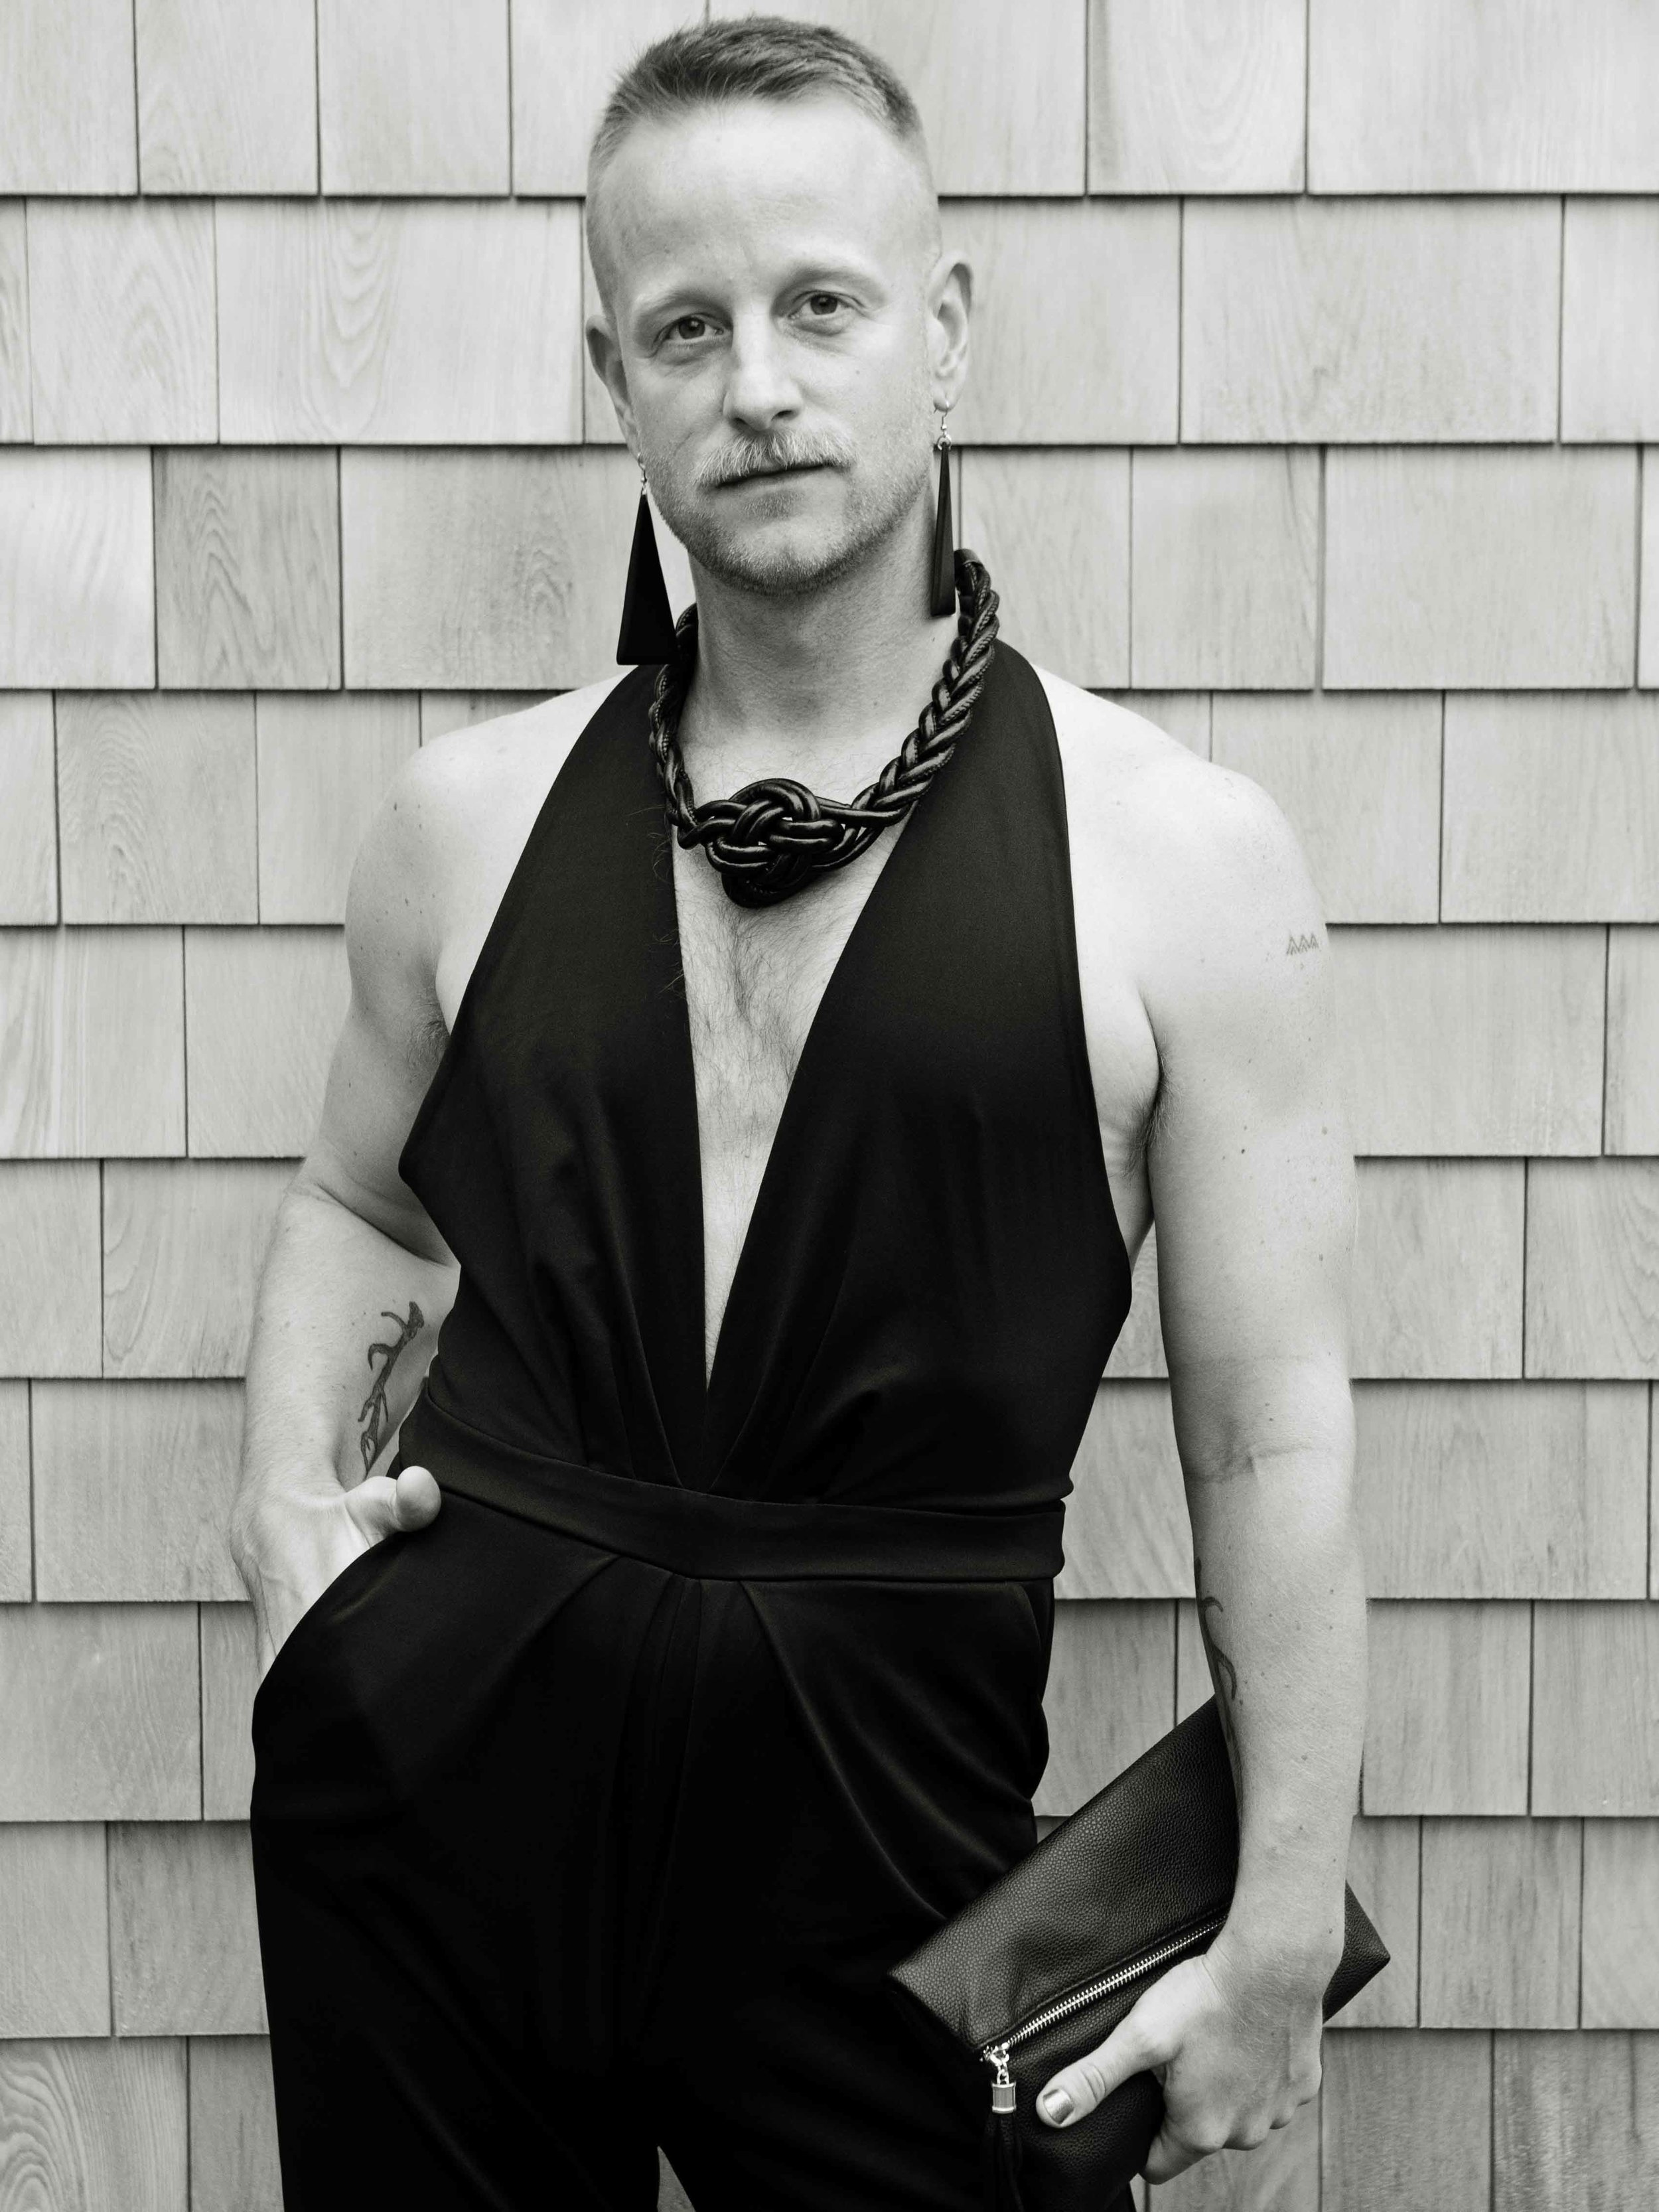 Portraits_In_Provincetown_2018_Credit_Emil_Cohen_215.jpg